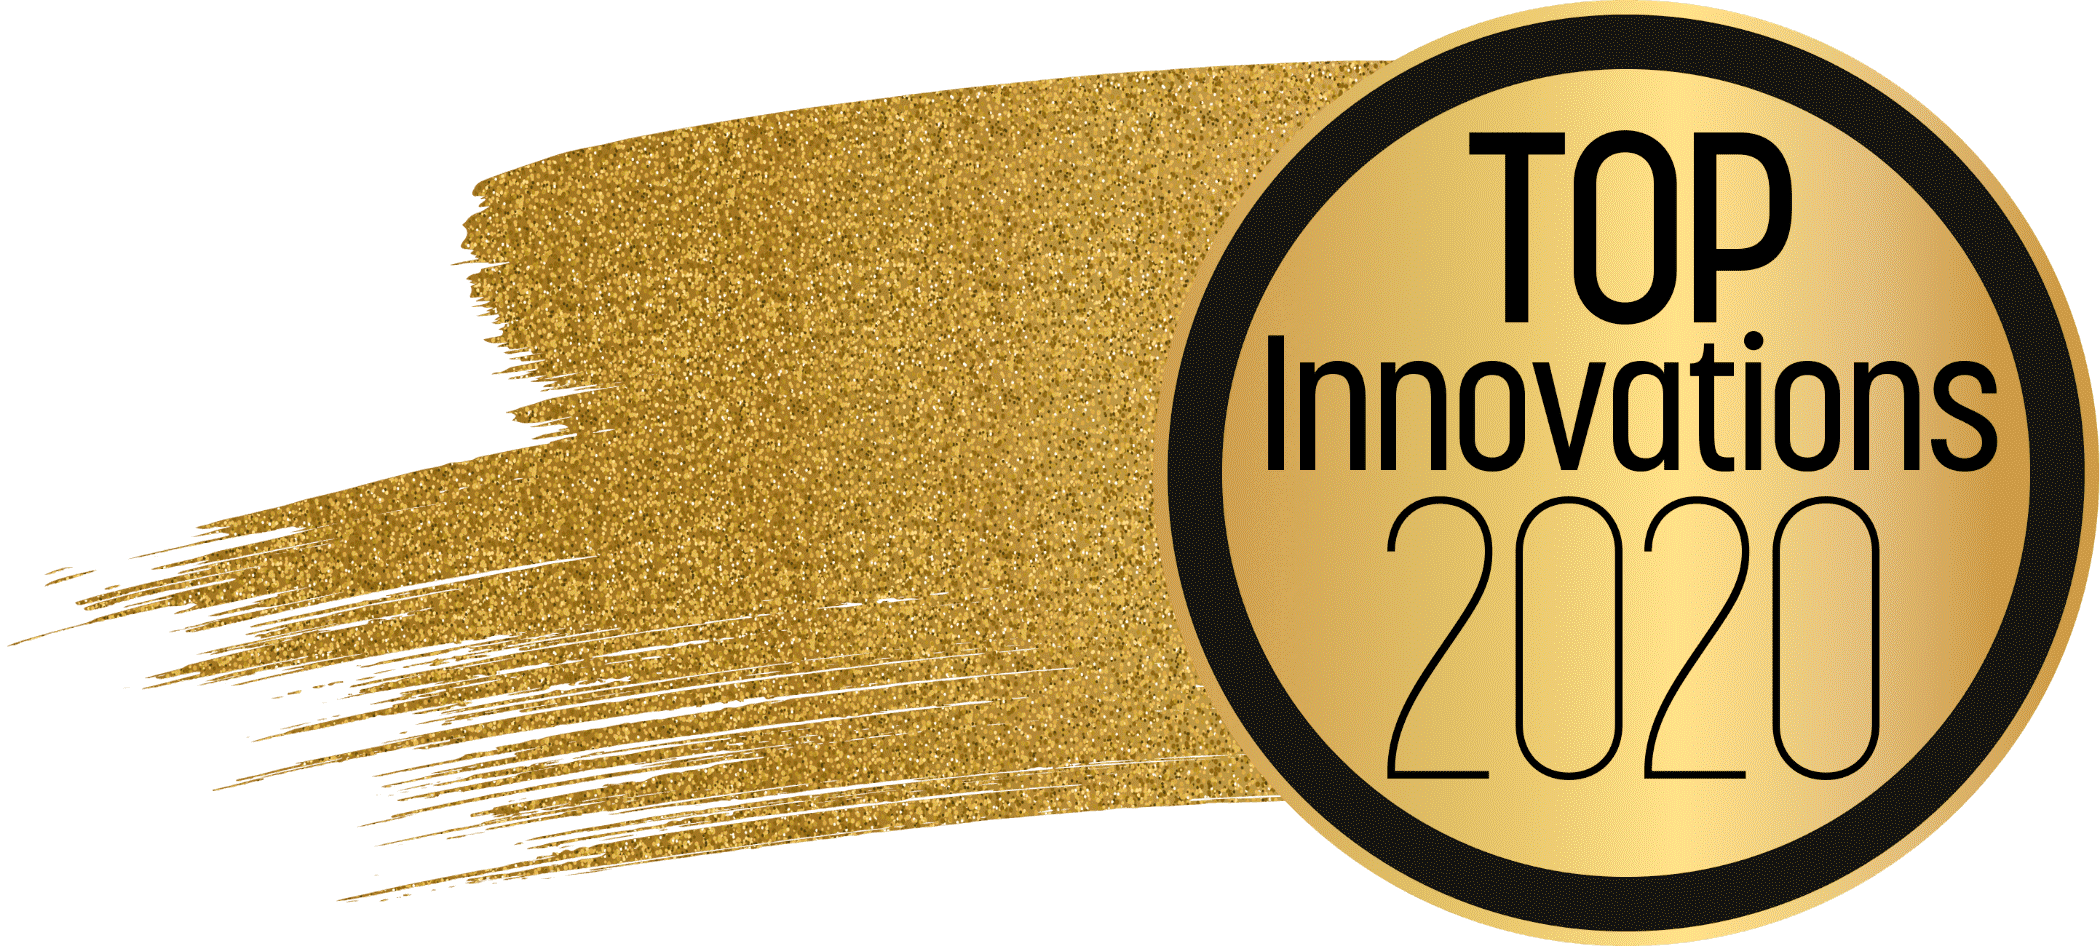 Top Innovations 2020 seal